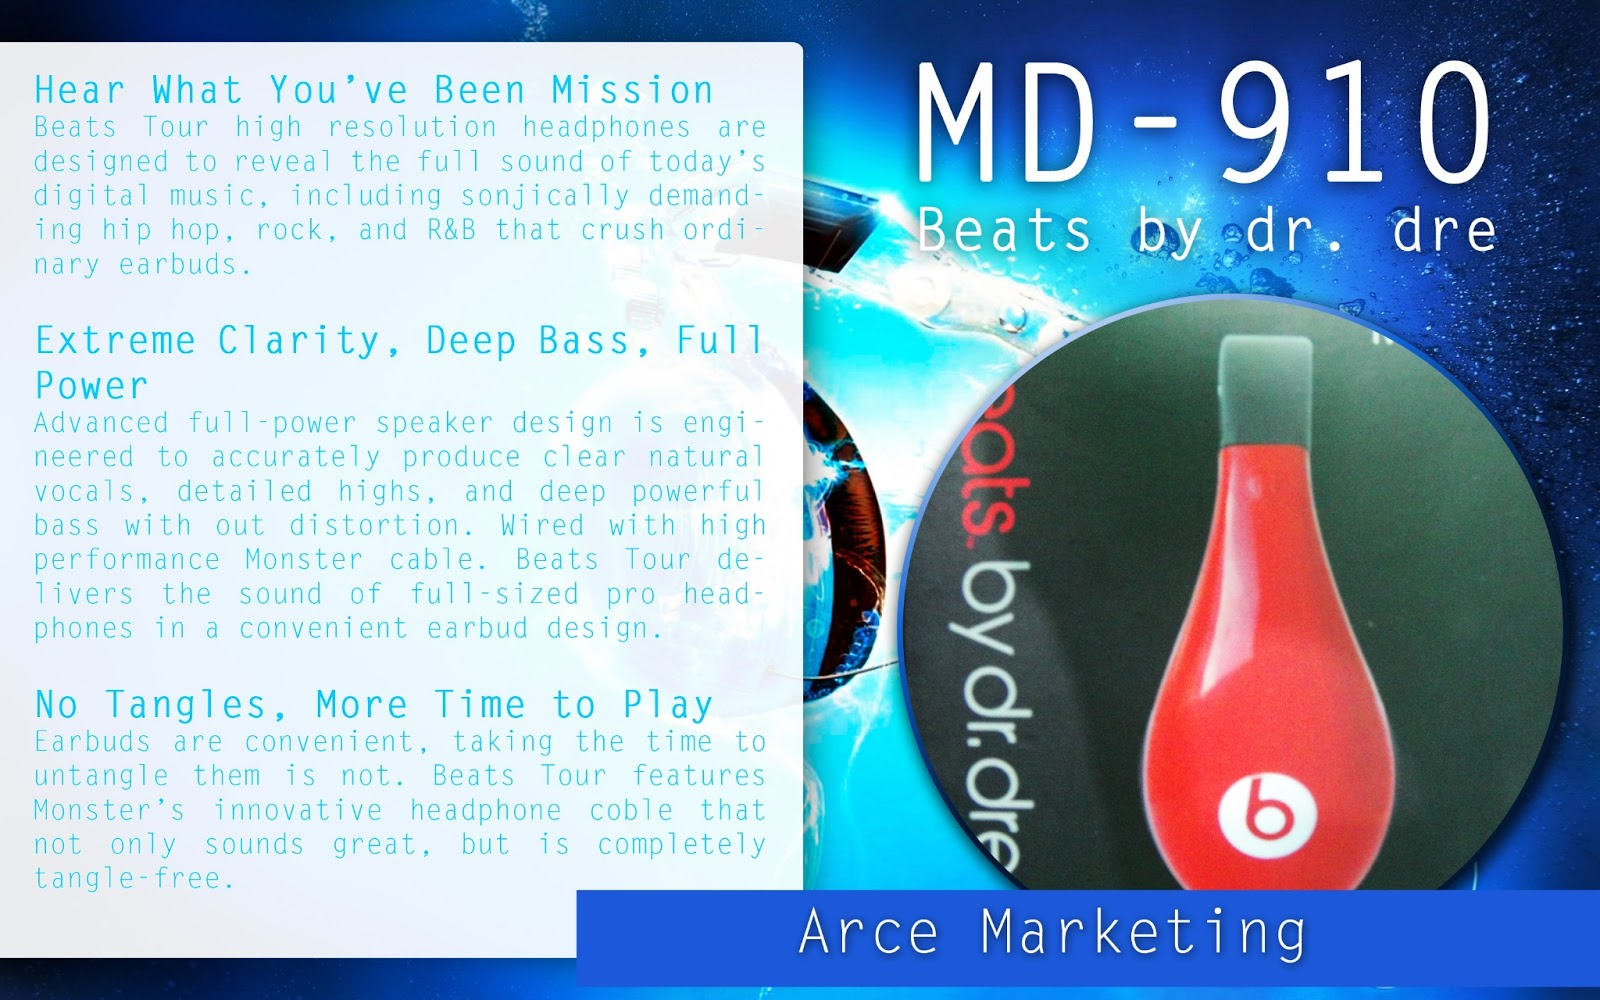 Arce Marketing: Beats by dr. dre MD-910